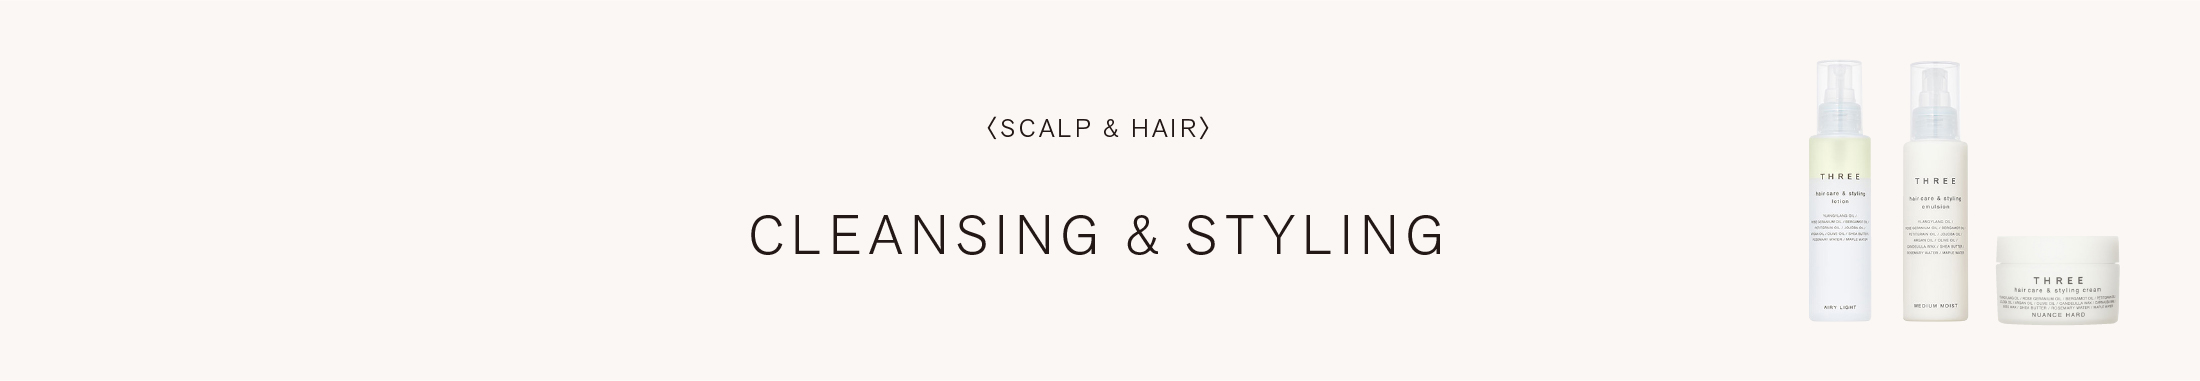 CLEANSING & STYLING